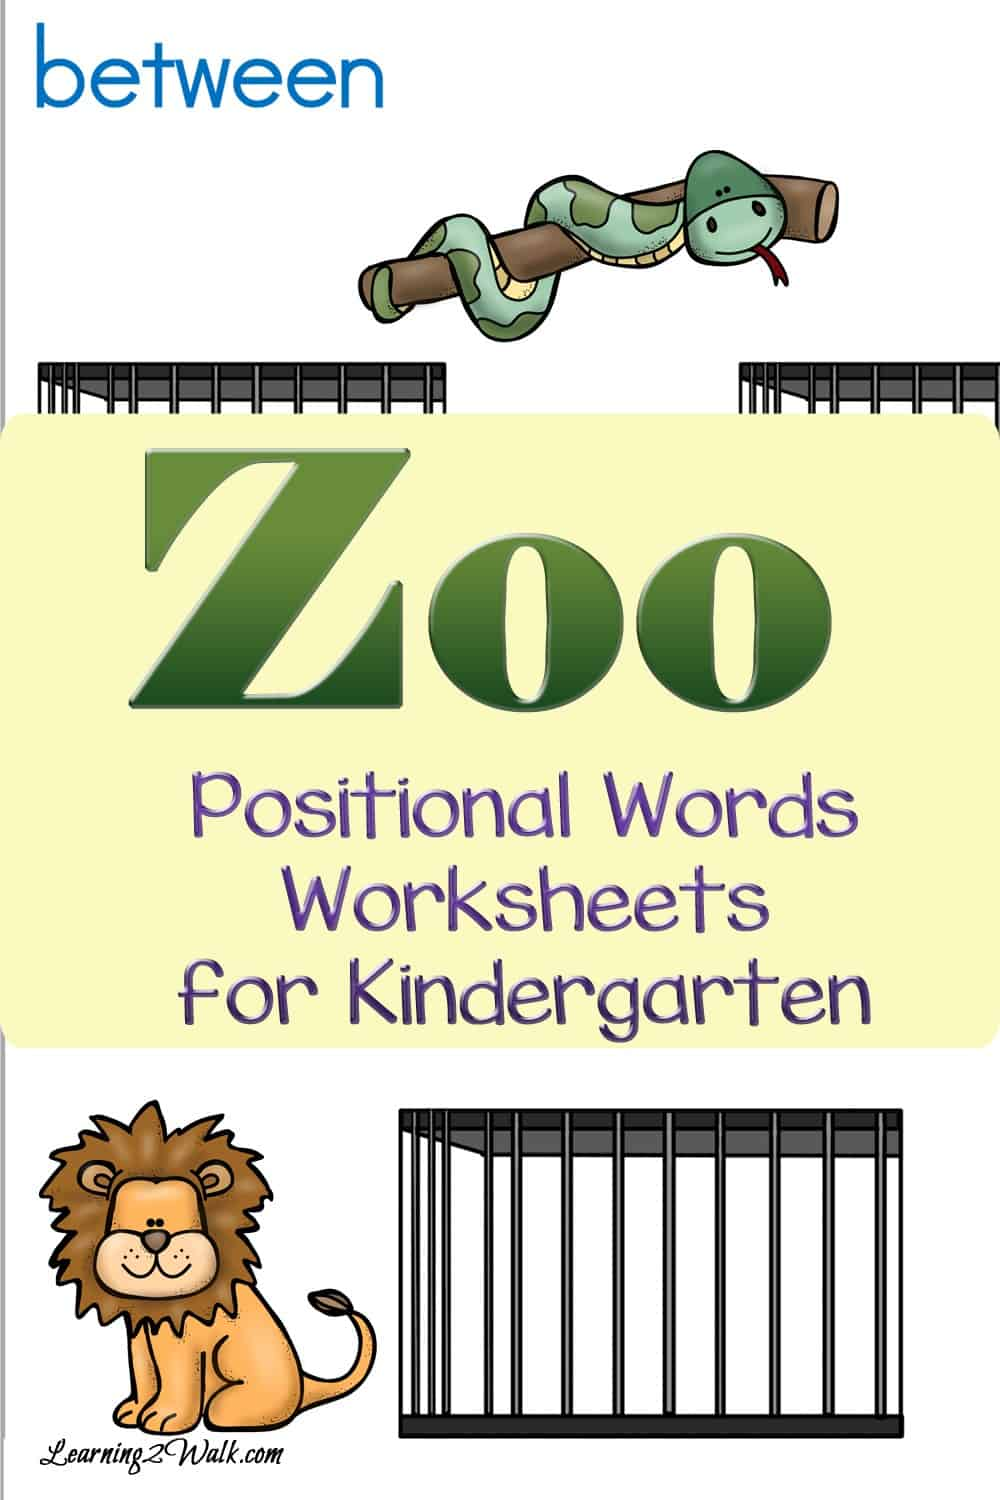 Don't you just love the zoo? Allow your kids to explore these zoo positional words worksheets for kindergarten